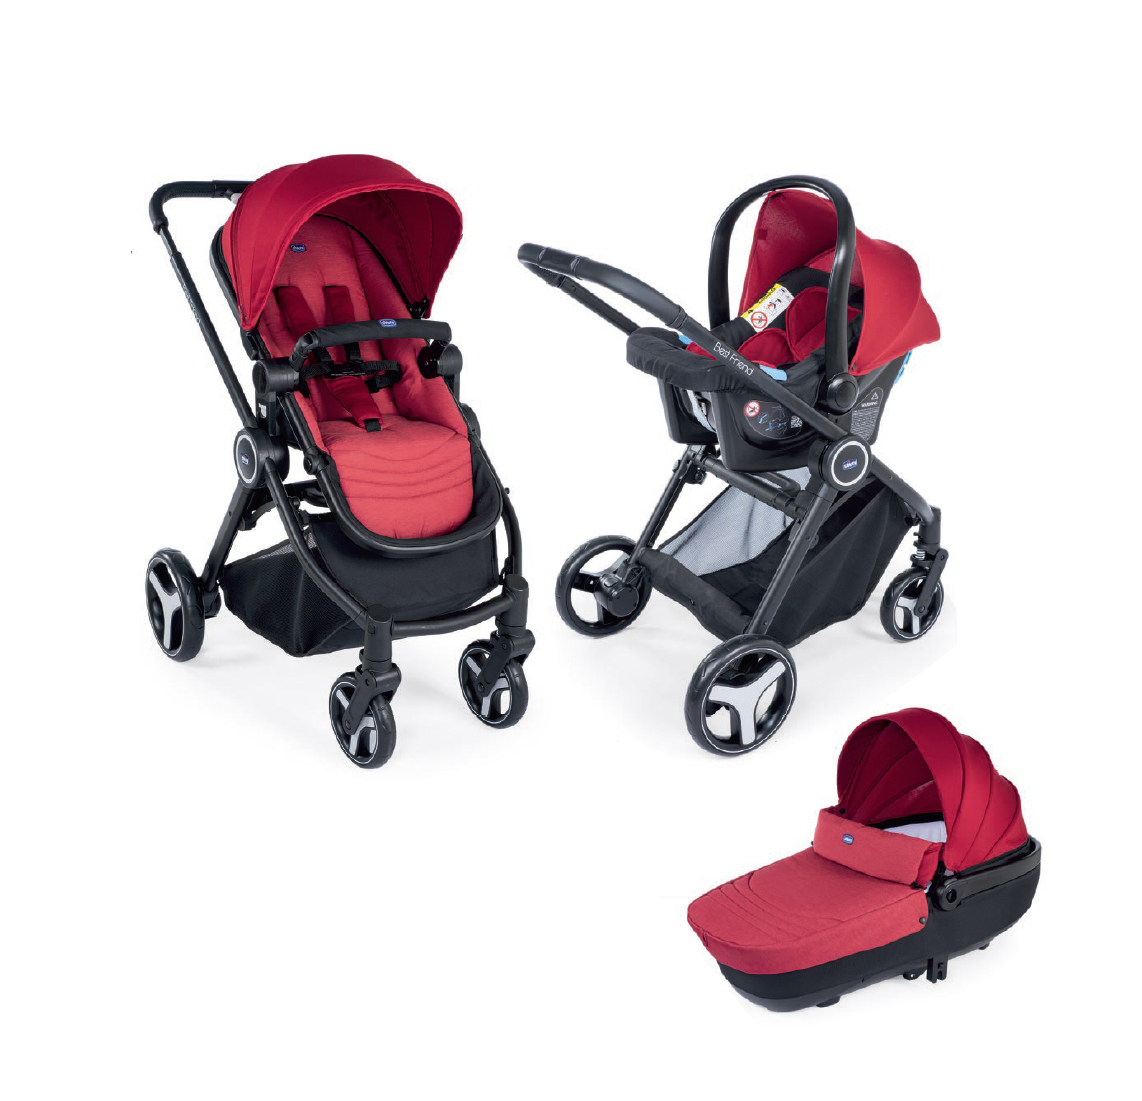 Carucior 3 in 1 Chicco Trio Best Friend Comfort, Red (Rosu), 0luni+